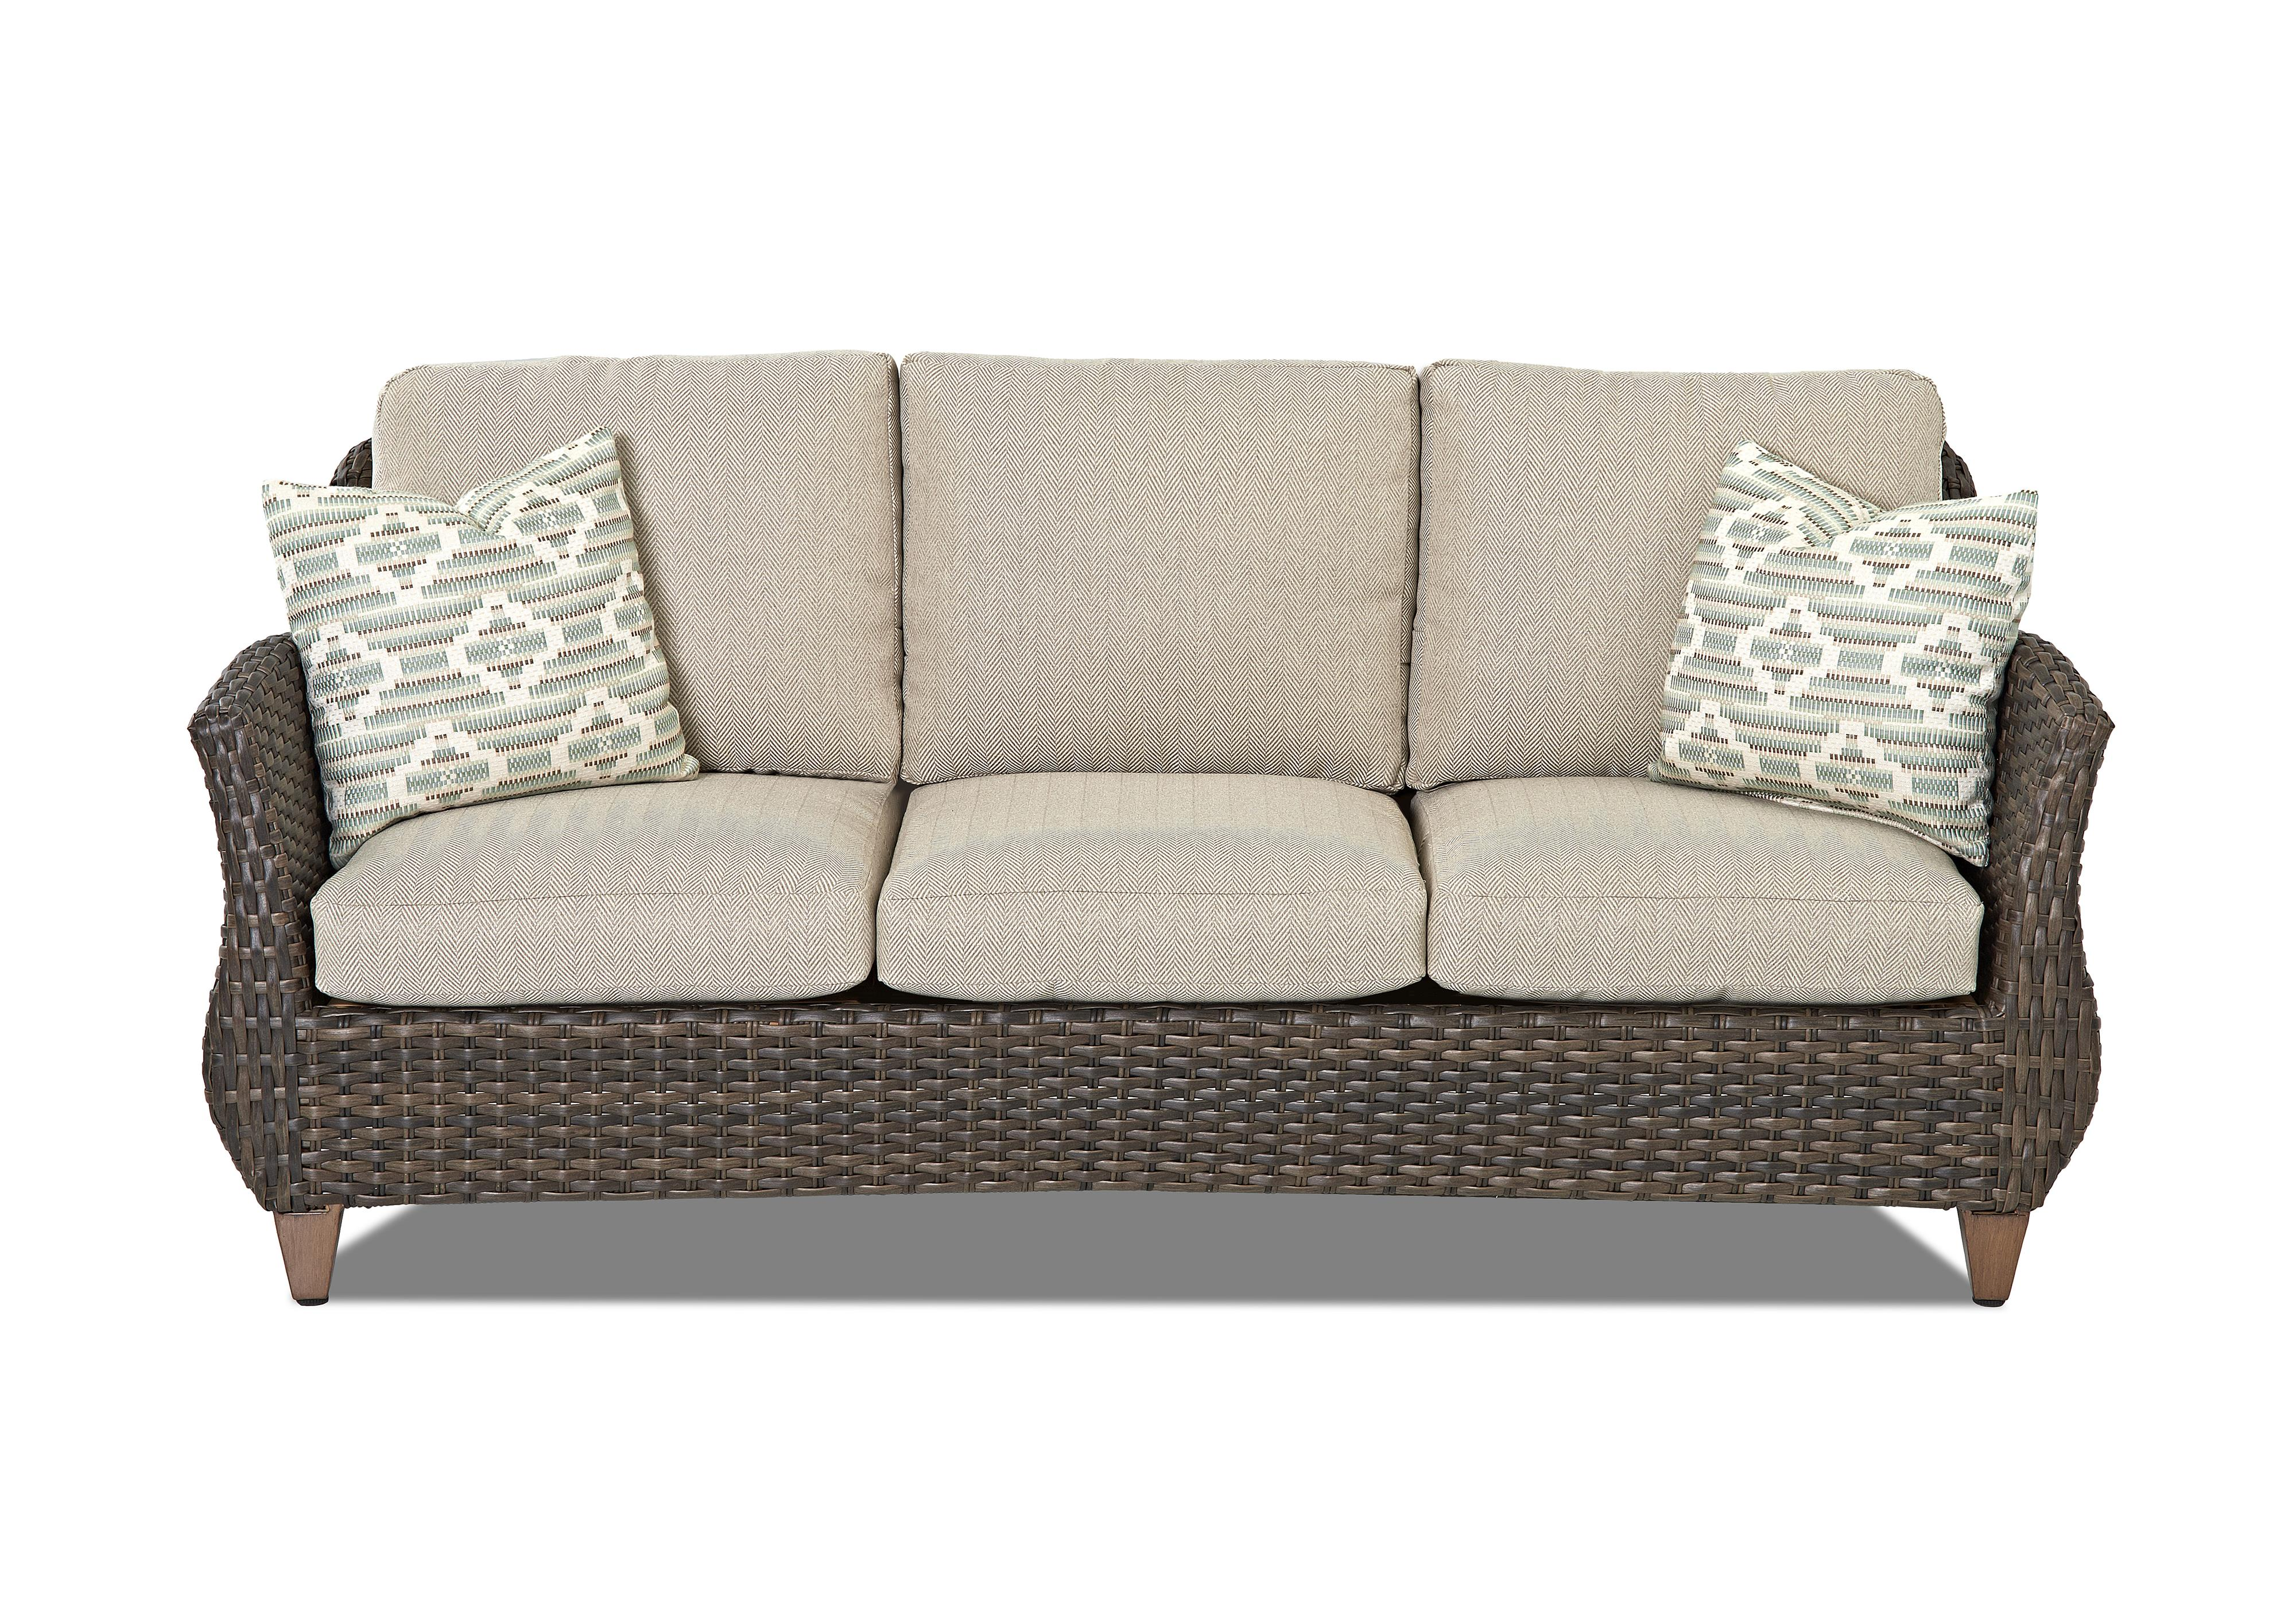 Sycamore Outdoor Sofa by Klaussner Outdoor at Rooms for Less